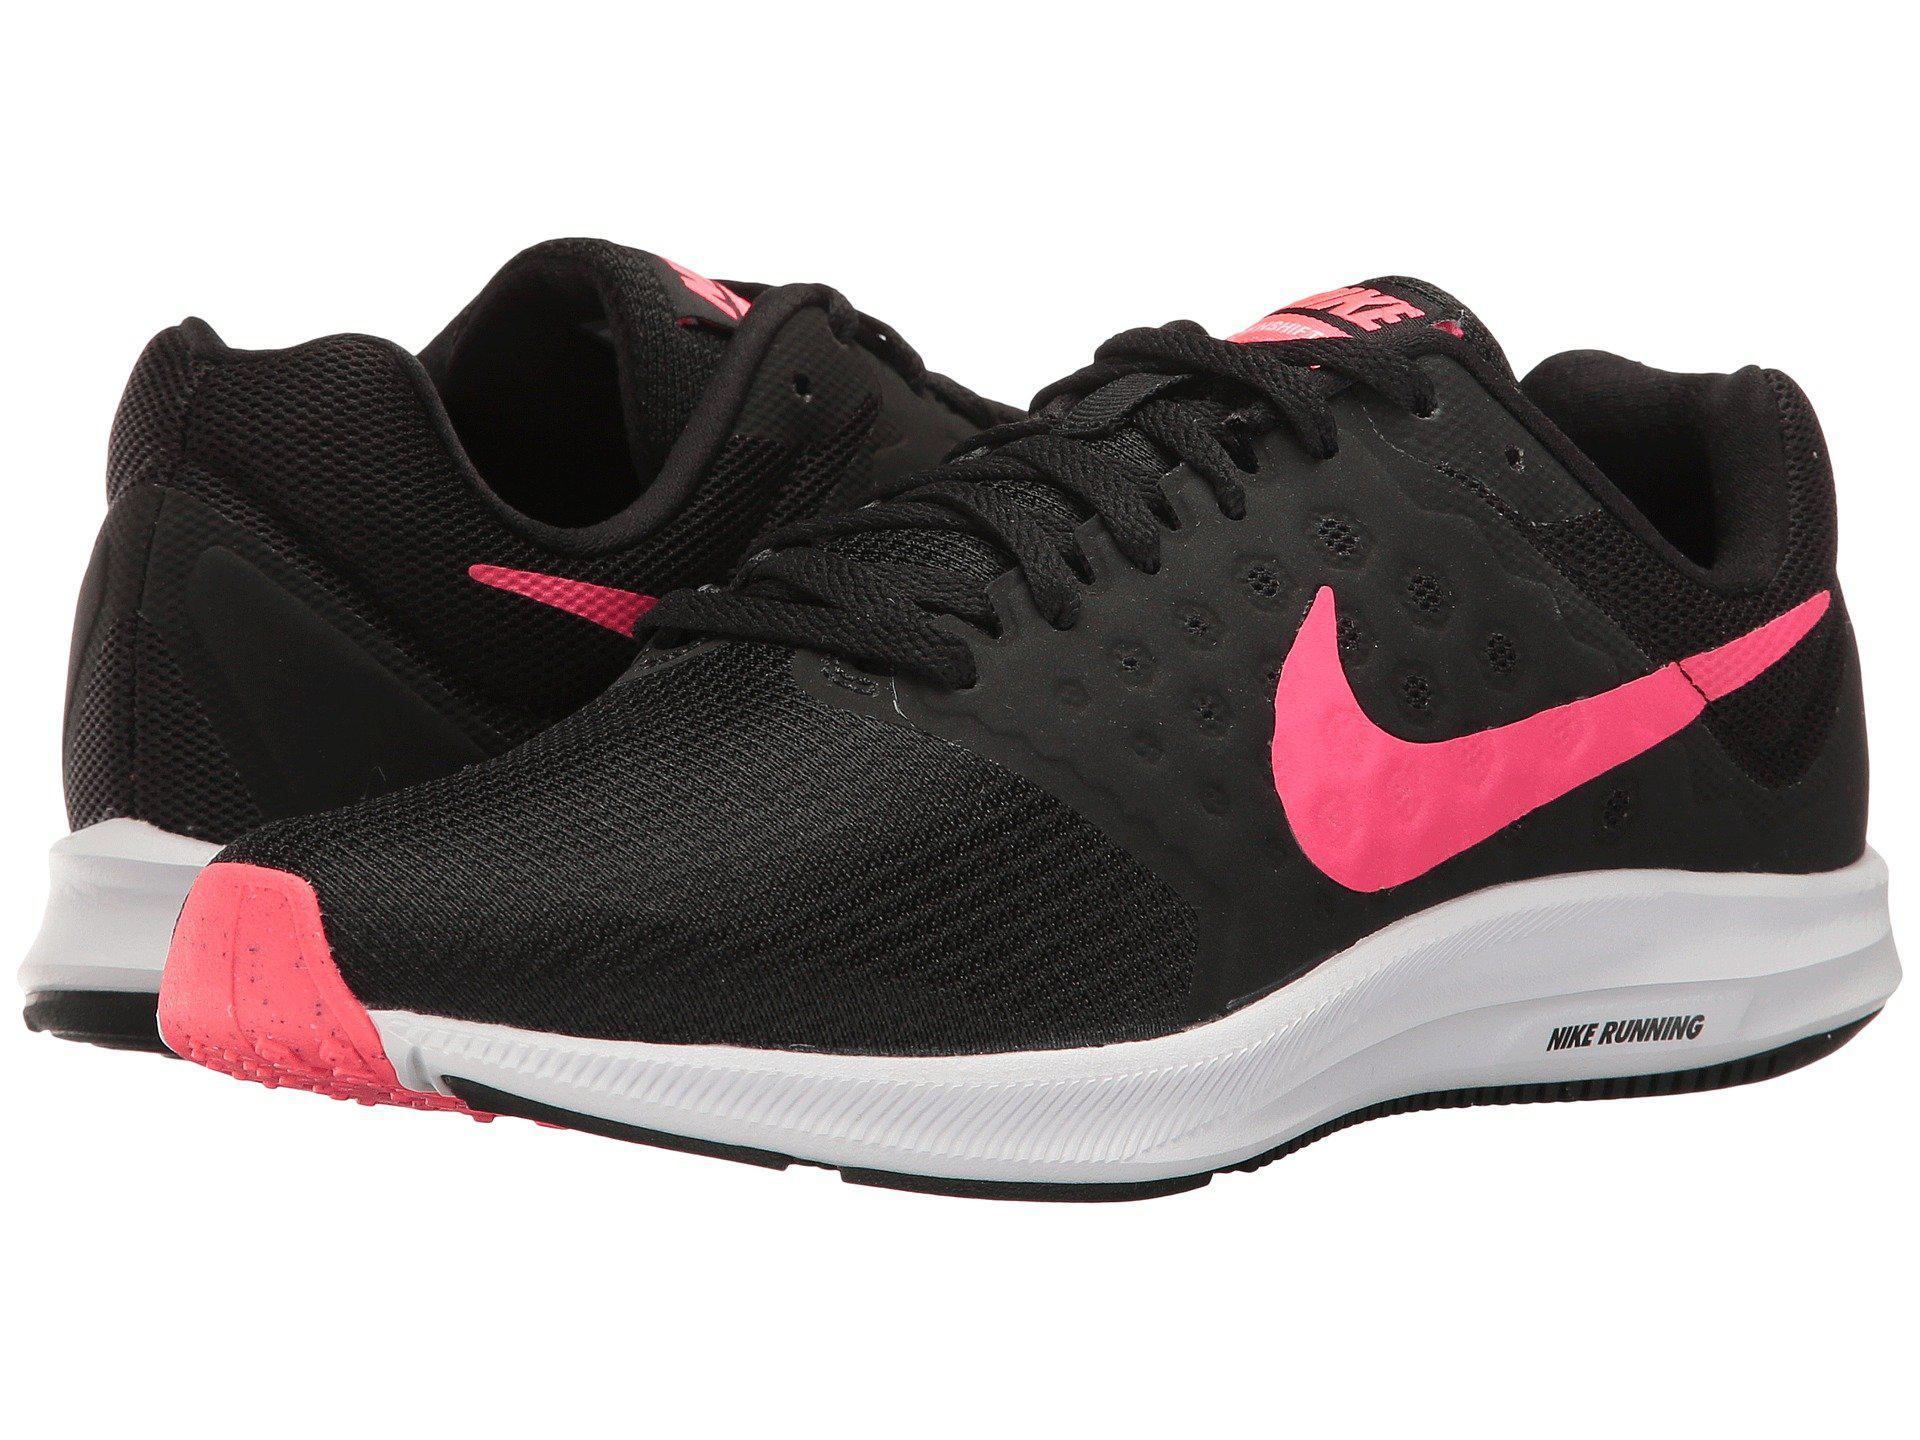 c33bfb187428d Lyst - Nike Downshifter 7 in Black - Save 30%